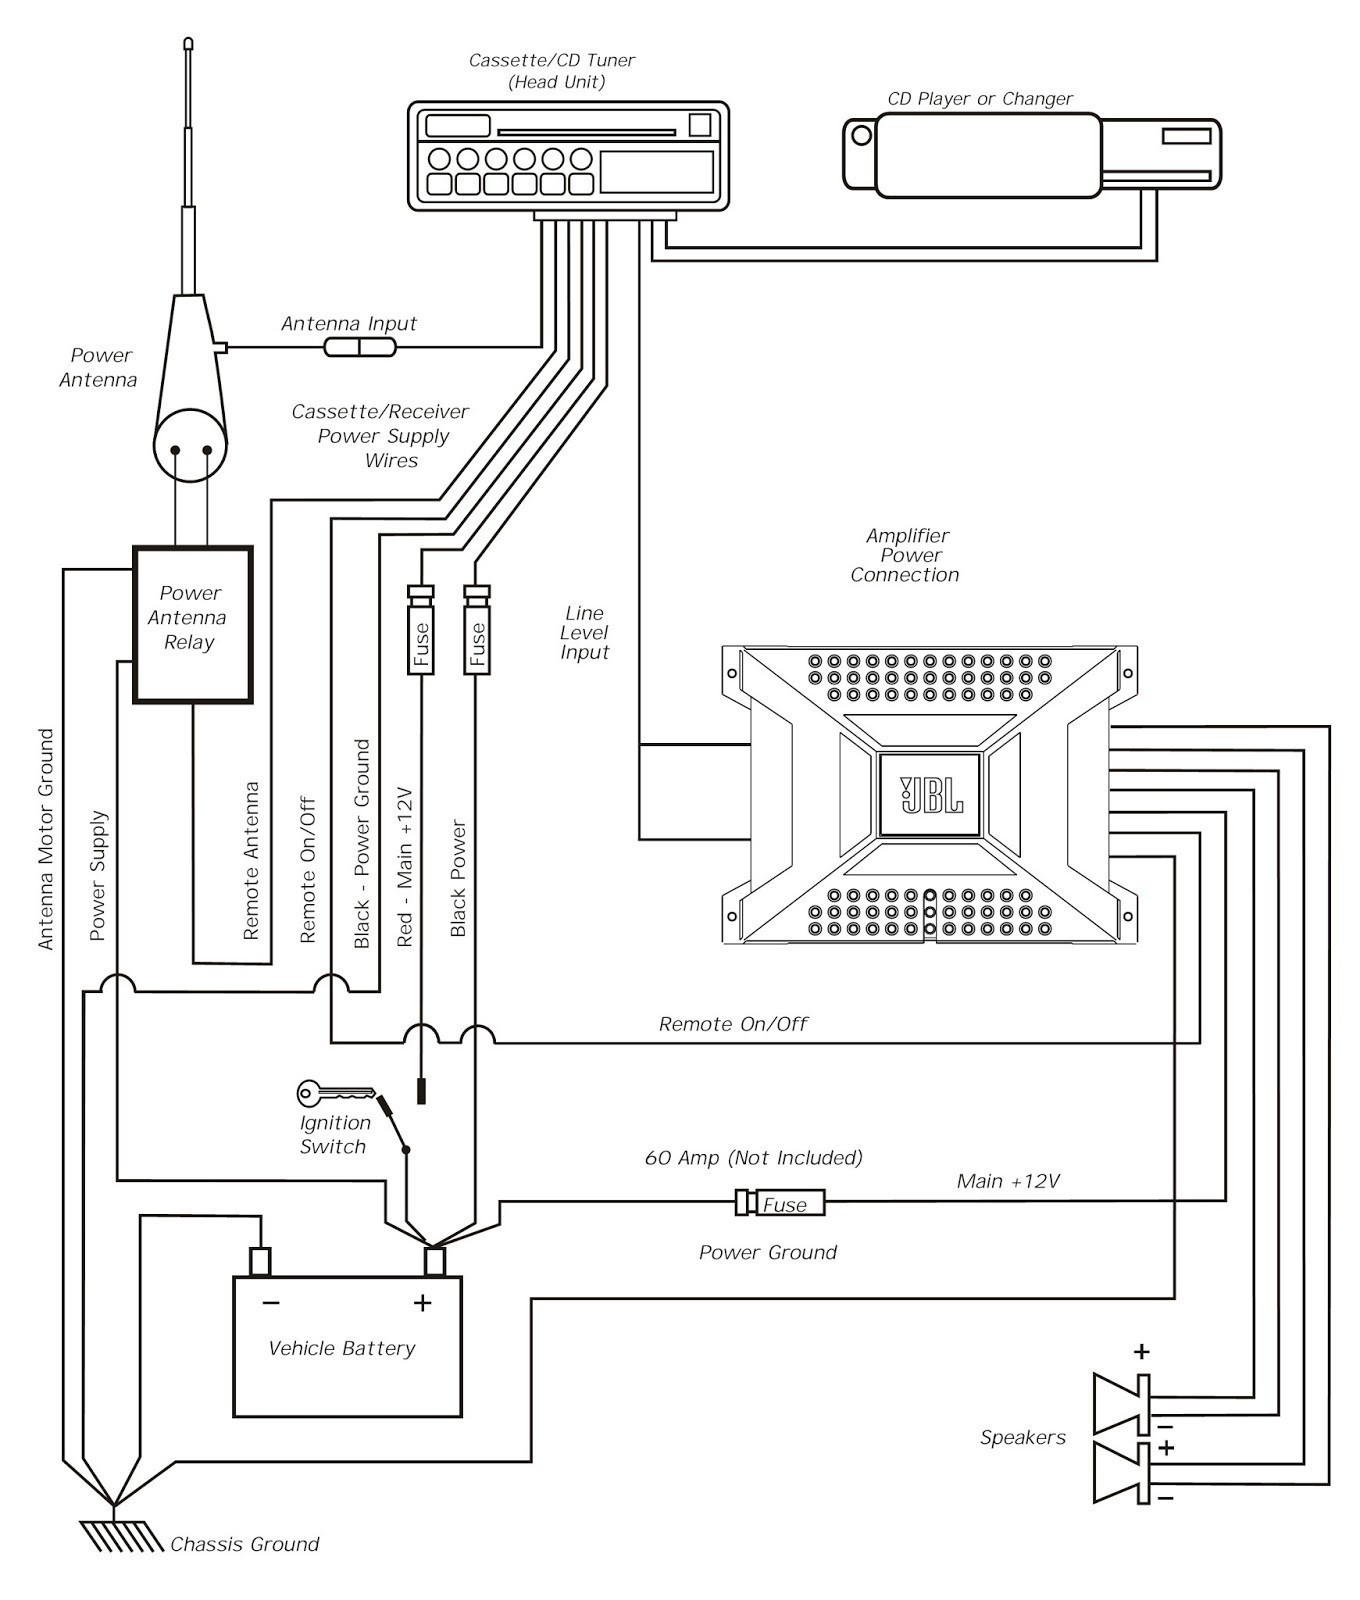 WRG-7489] Amp Speaker Wiring Diagrams 6 on